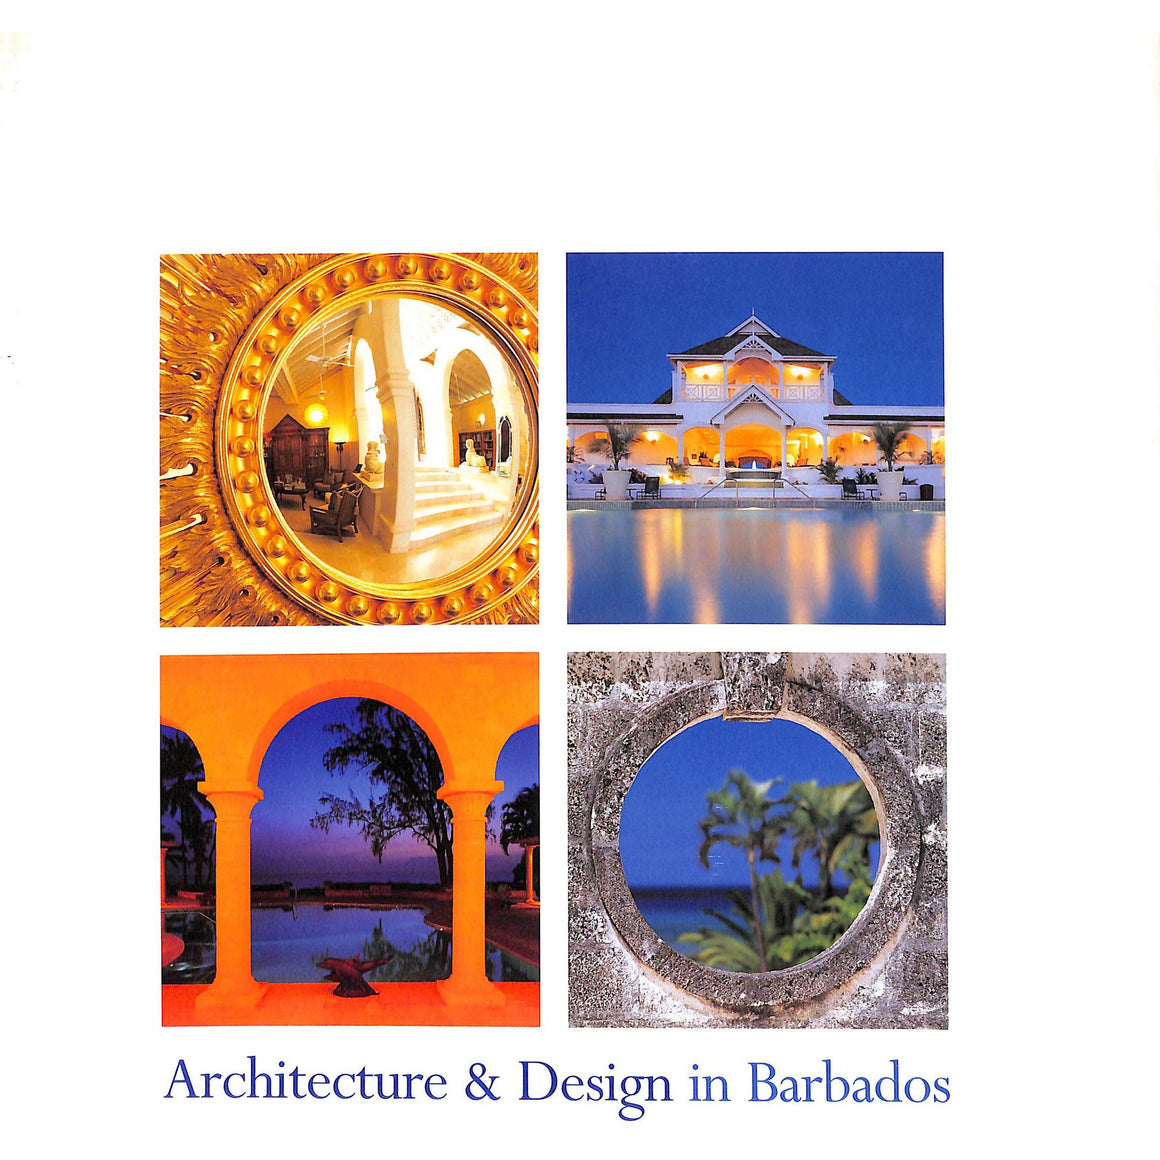 Architecture & Design in Barbados